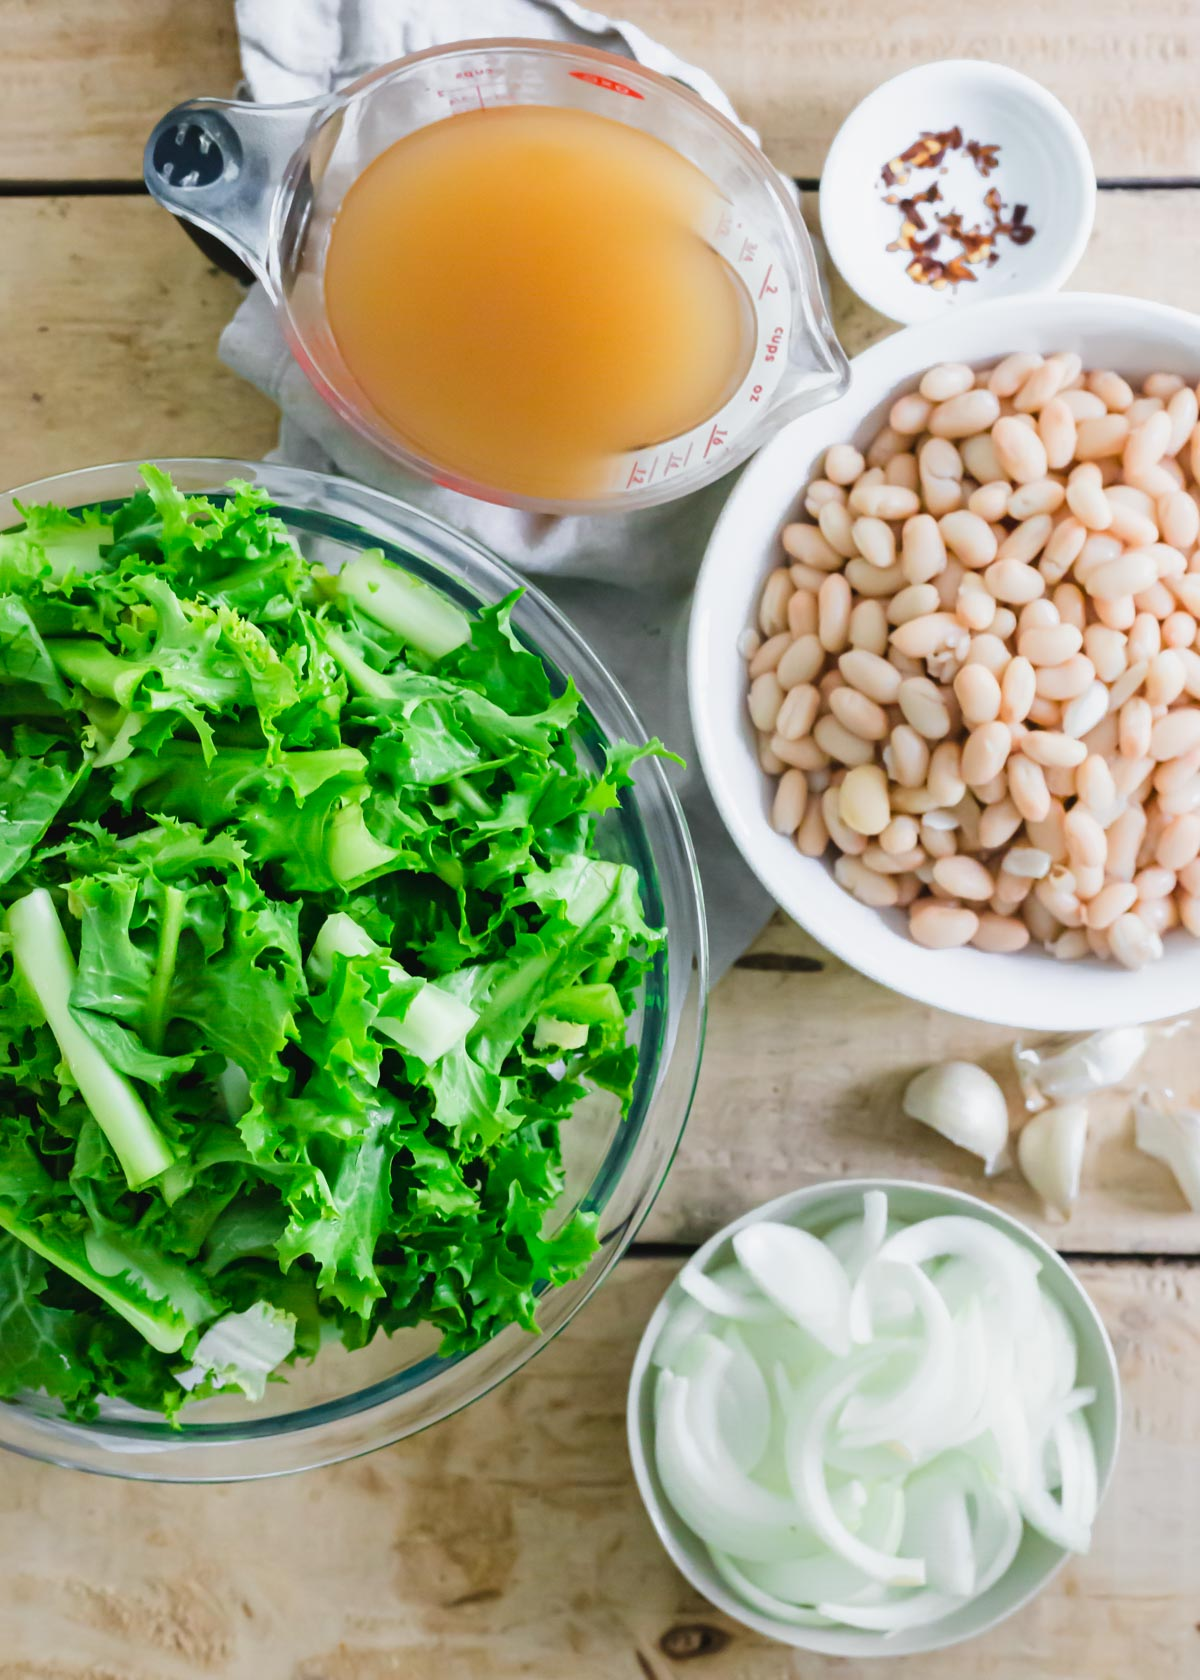 Ingredients to make the Italian dish of escarole and white beans.